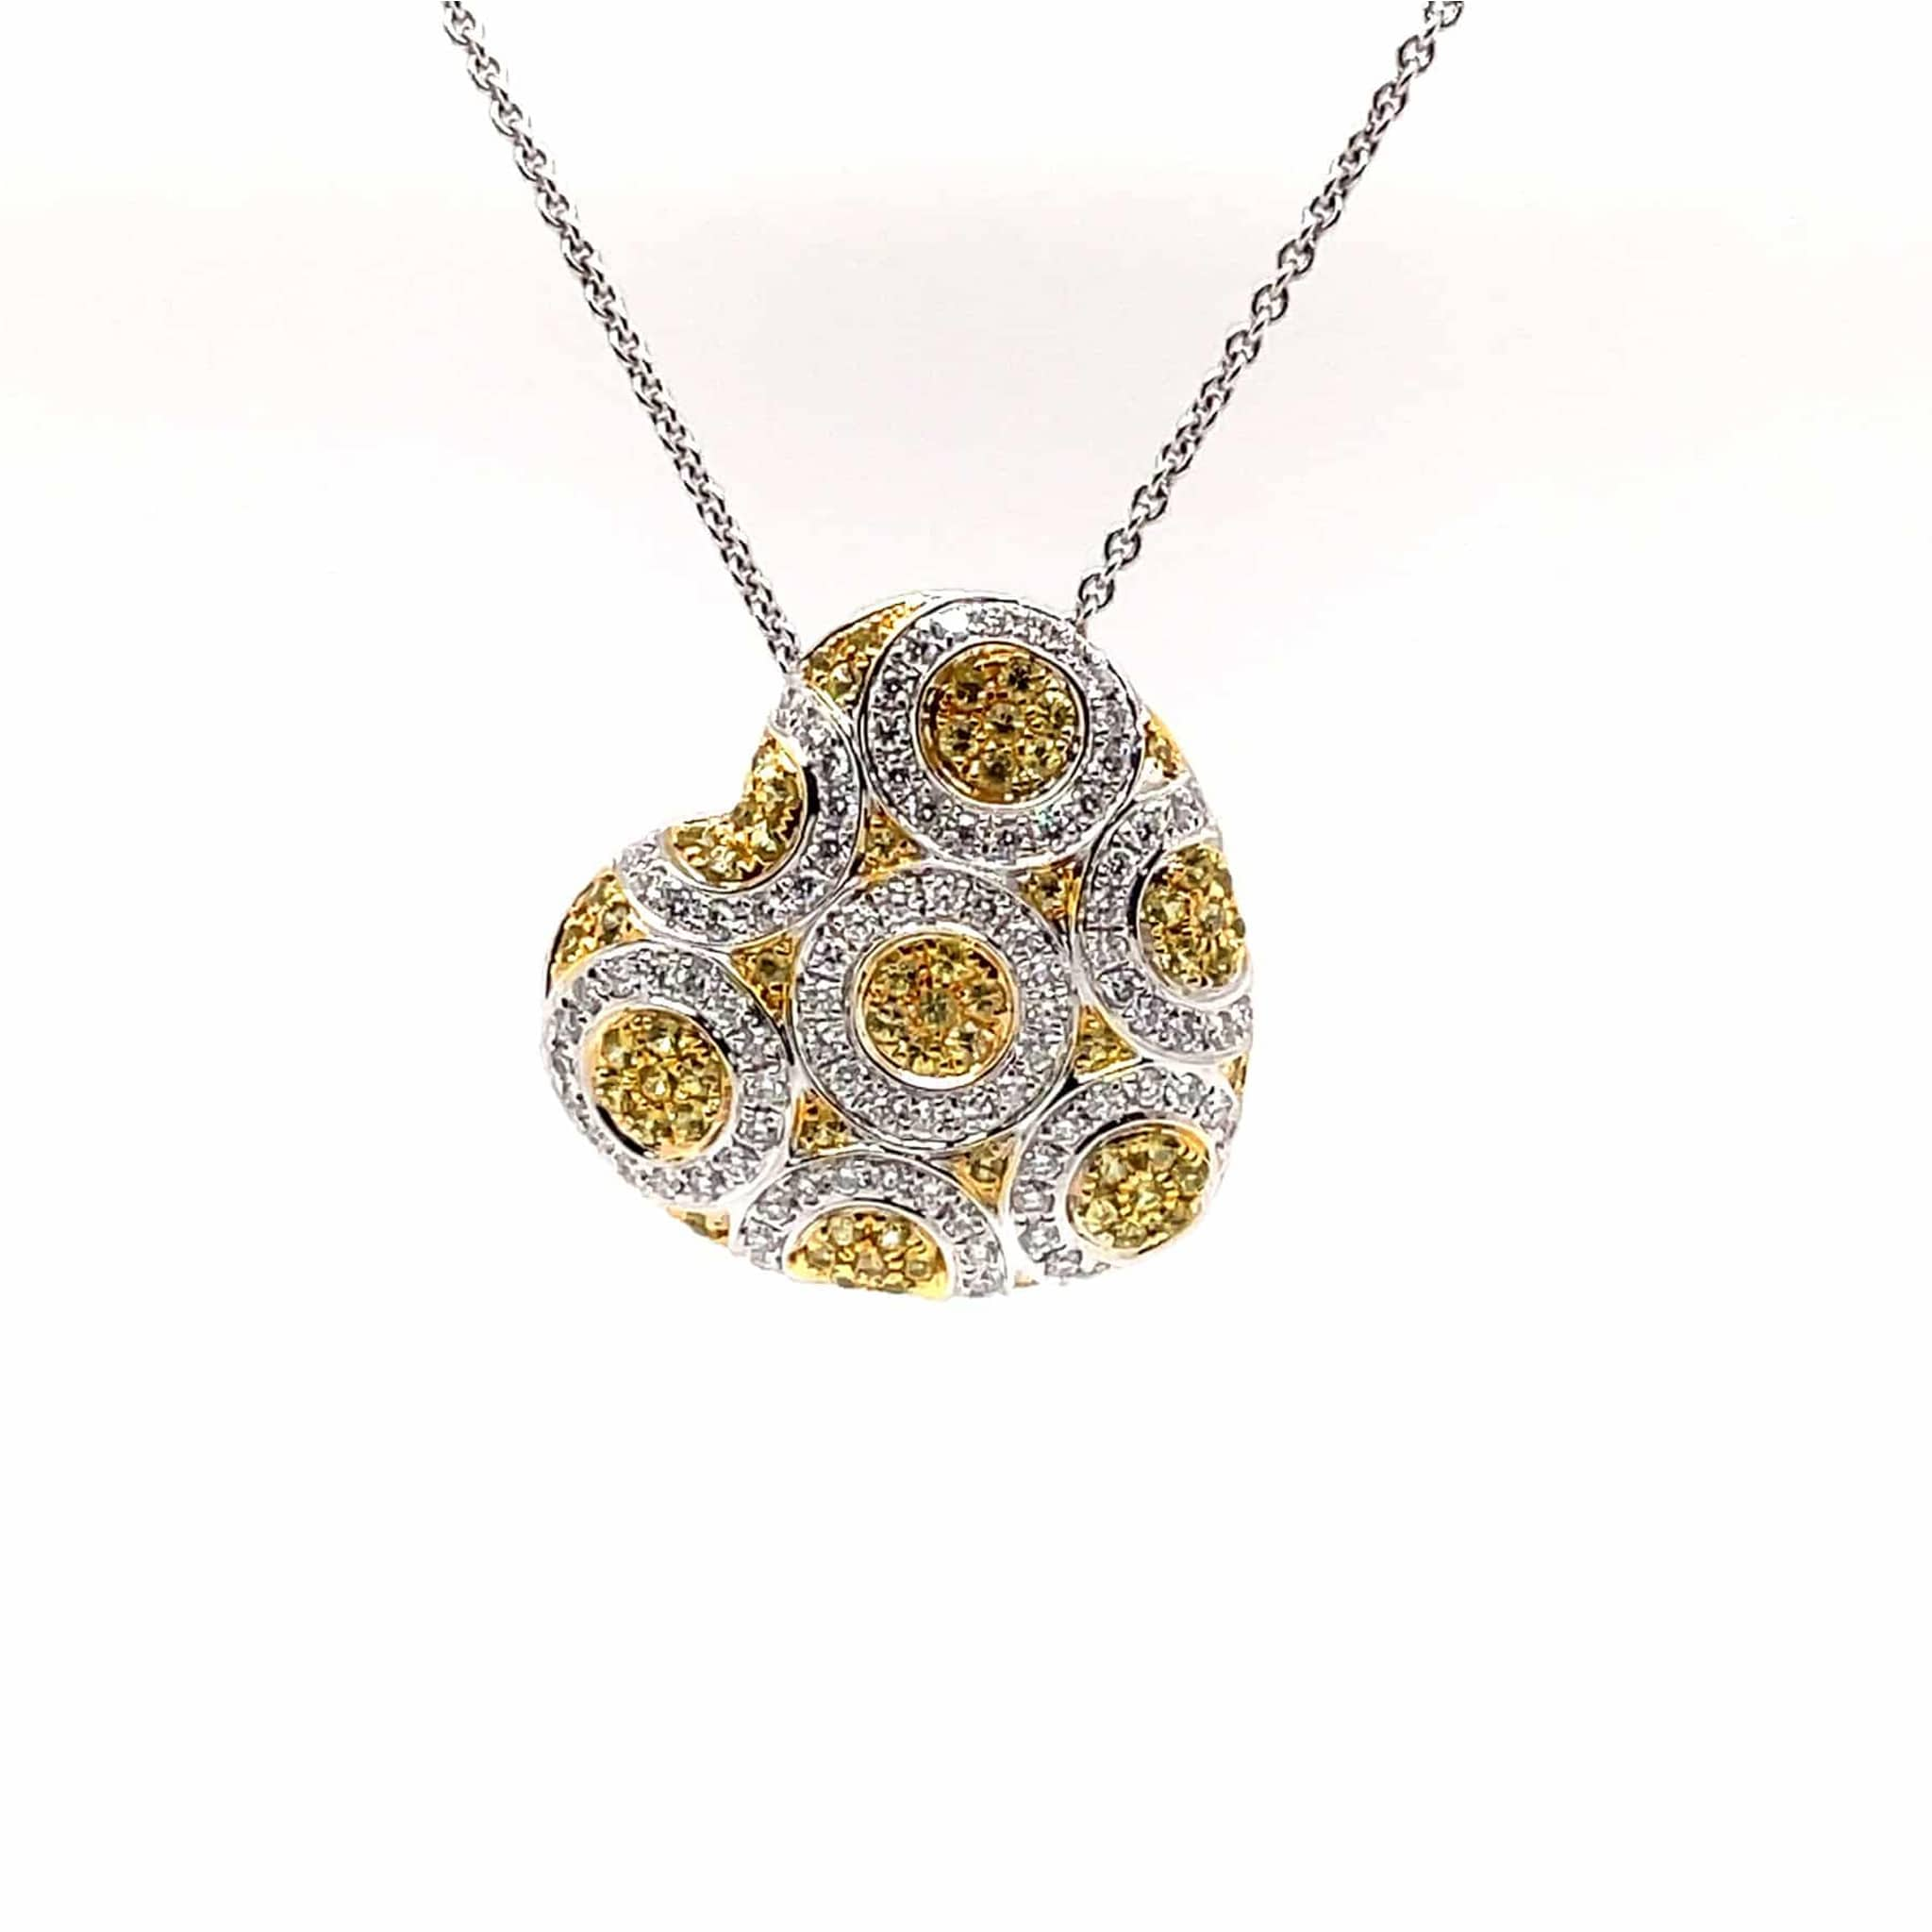 Heart Shaped Pendant in 18K White Gold with Yellow Sapphires and Diamonds